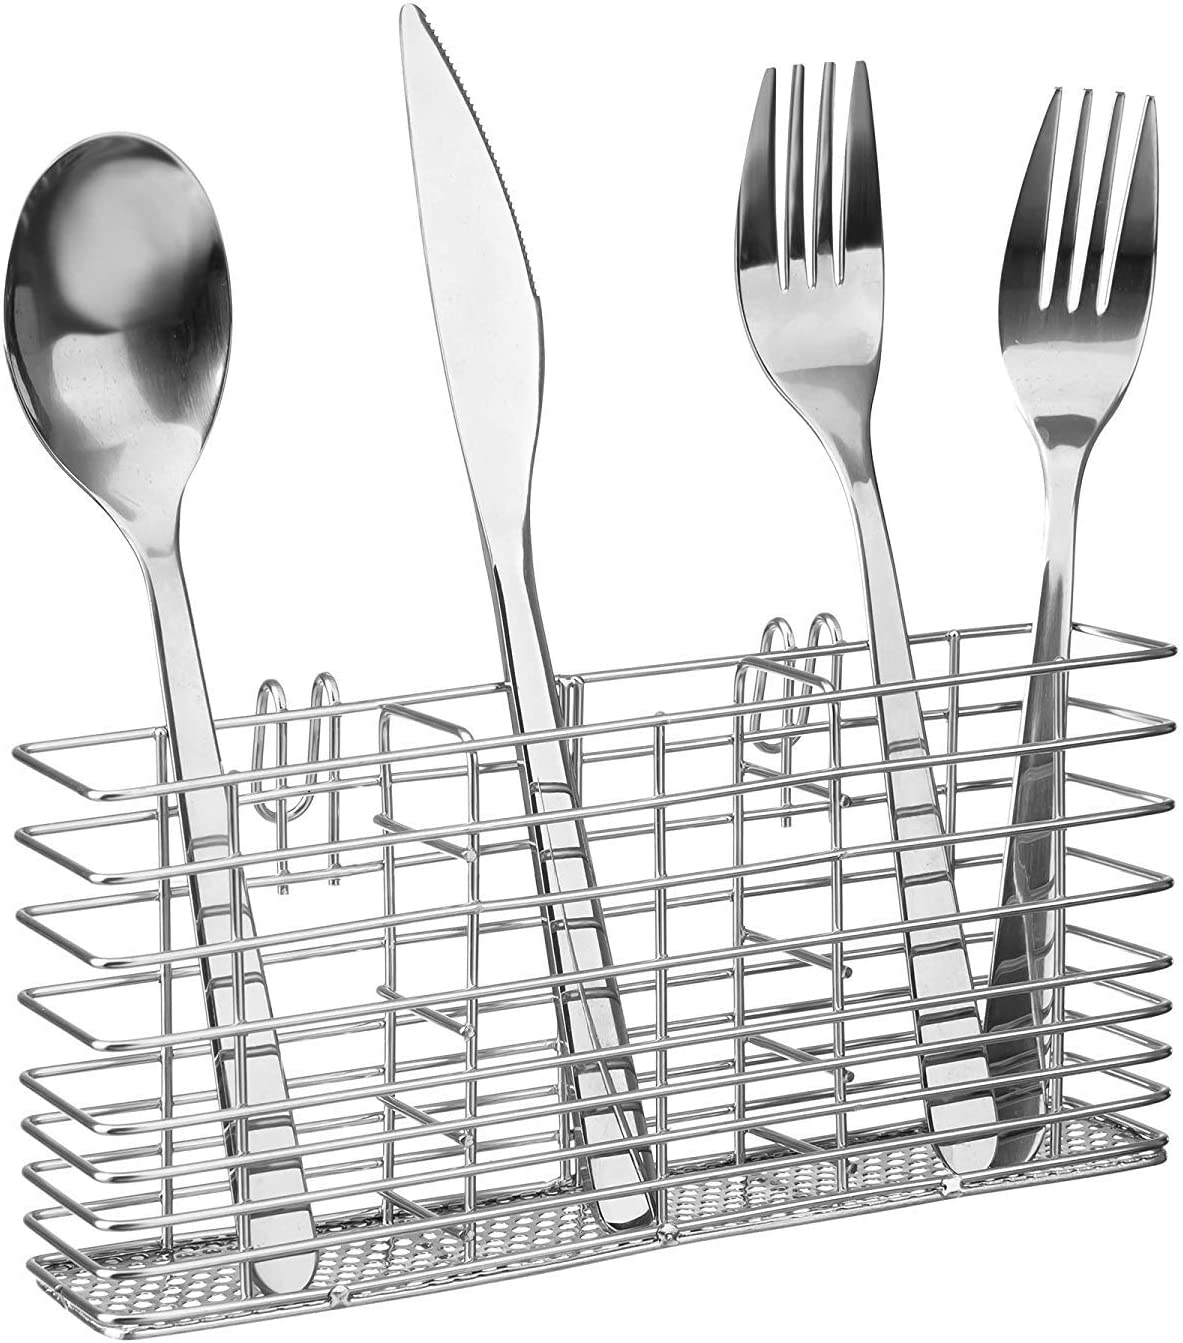 SANNO Stainless Steel Cutlery Utensil Holder Silverware Organizer Rack with Hooks Removable Drying Rack Silverware Holder Utensil Cutlery Basket Kitchen Dish Drainer Dish Drying Rack